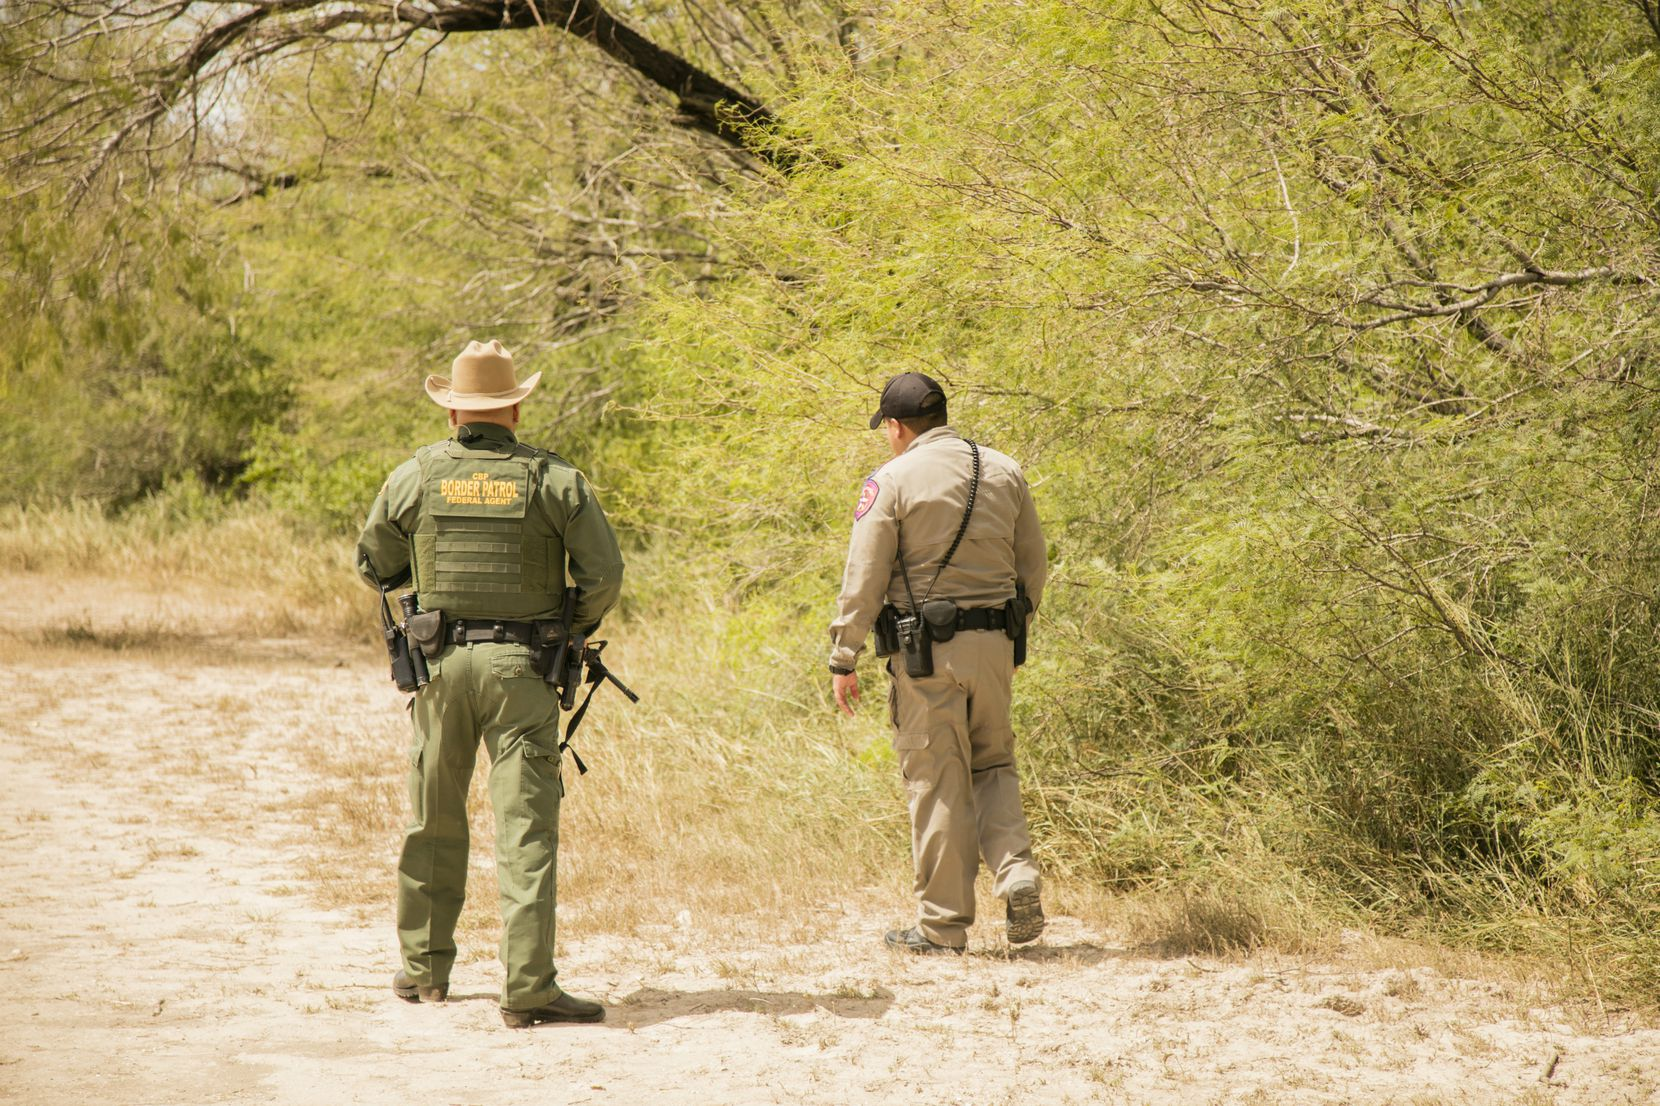 """Members of a so-called Cortina unit patrol a part of the challenging terrain in the Rio Grande Valley. DPS regional commander Jose Rodriguez has credited the partnership with helping troopers """"get off the blacktop."""" (Department of Public Safety)"""